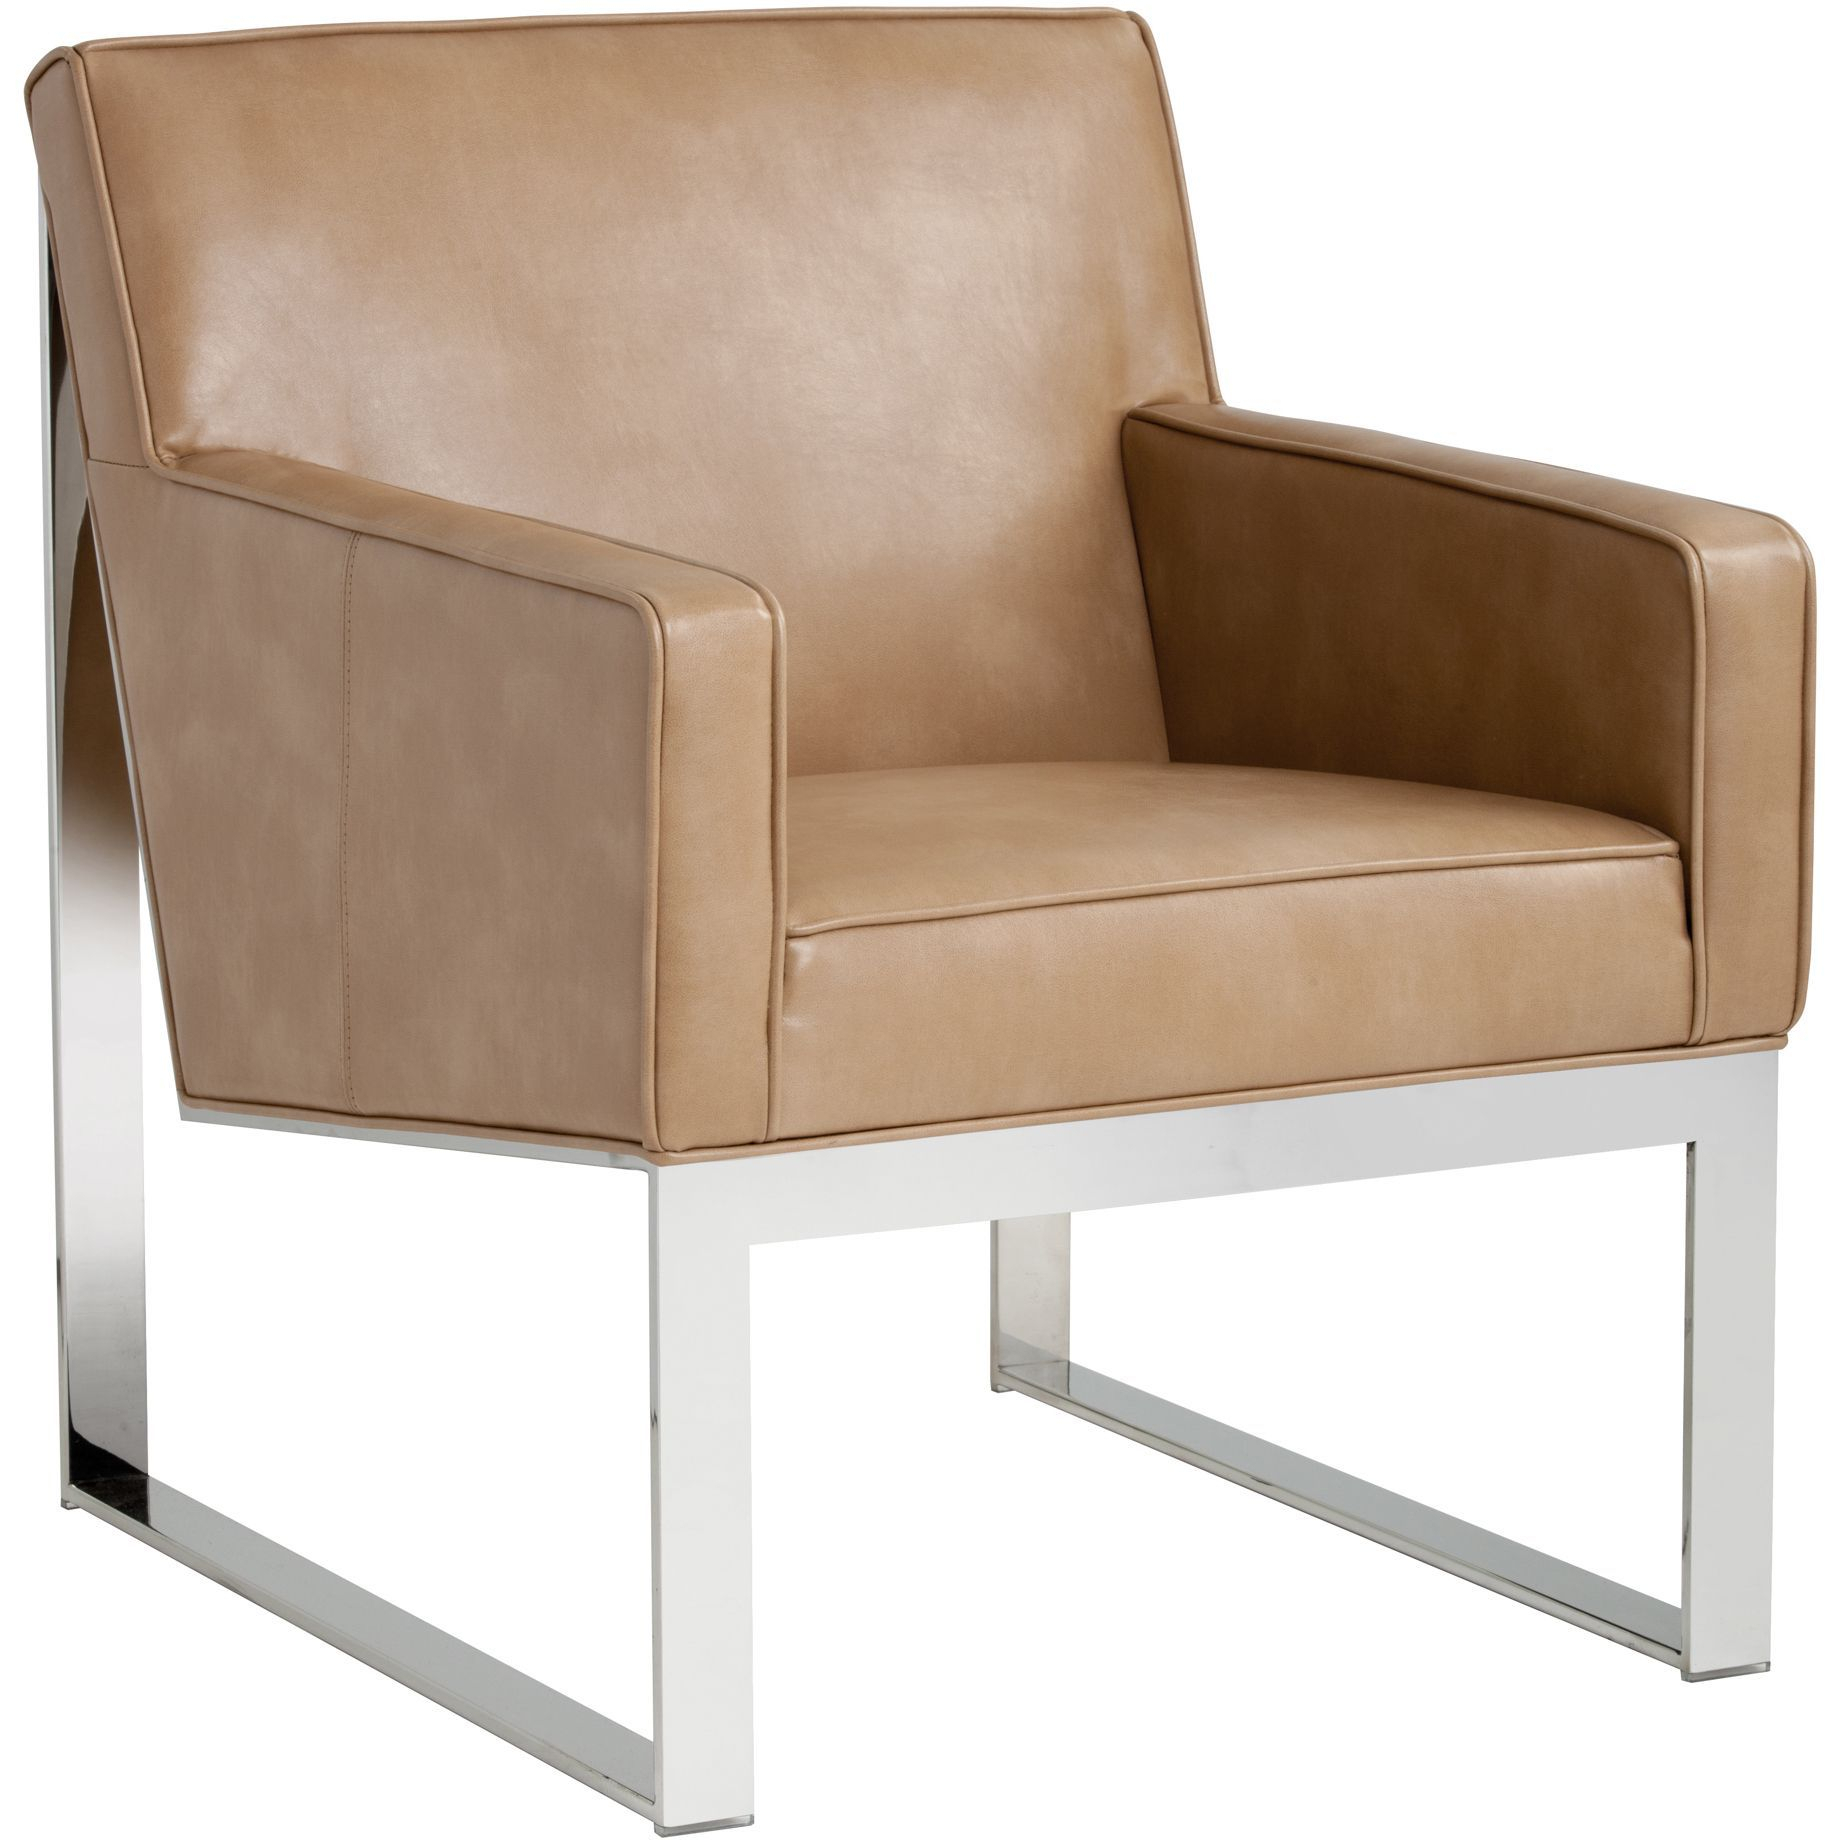 Sunpan 'club' Sheldon Leather Armchair | Products | Pinterest In Sheldon Oversized Sofa Chairs (Image 20 of 20)